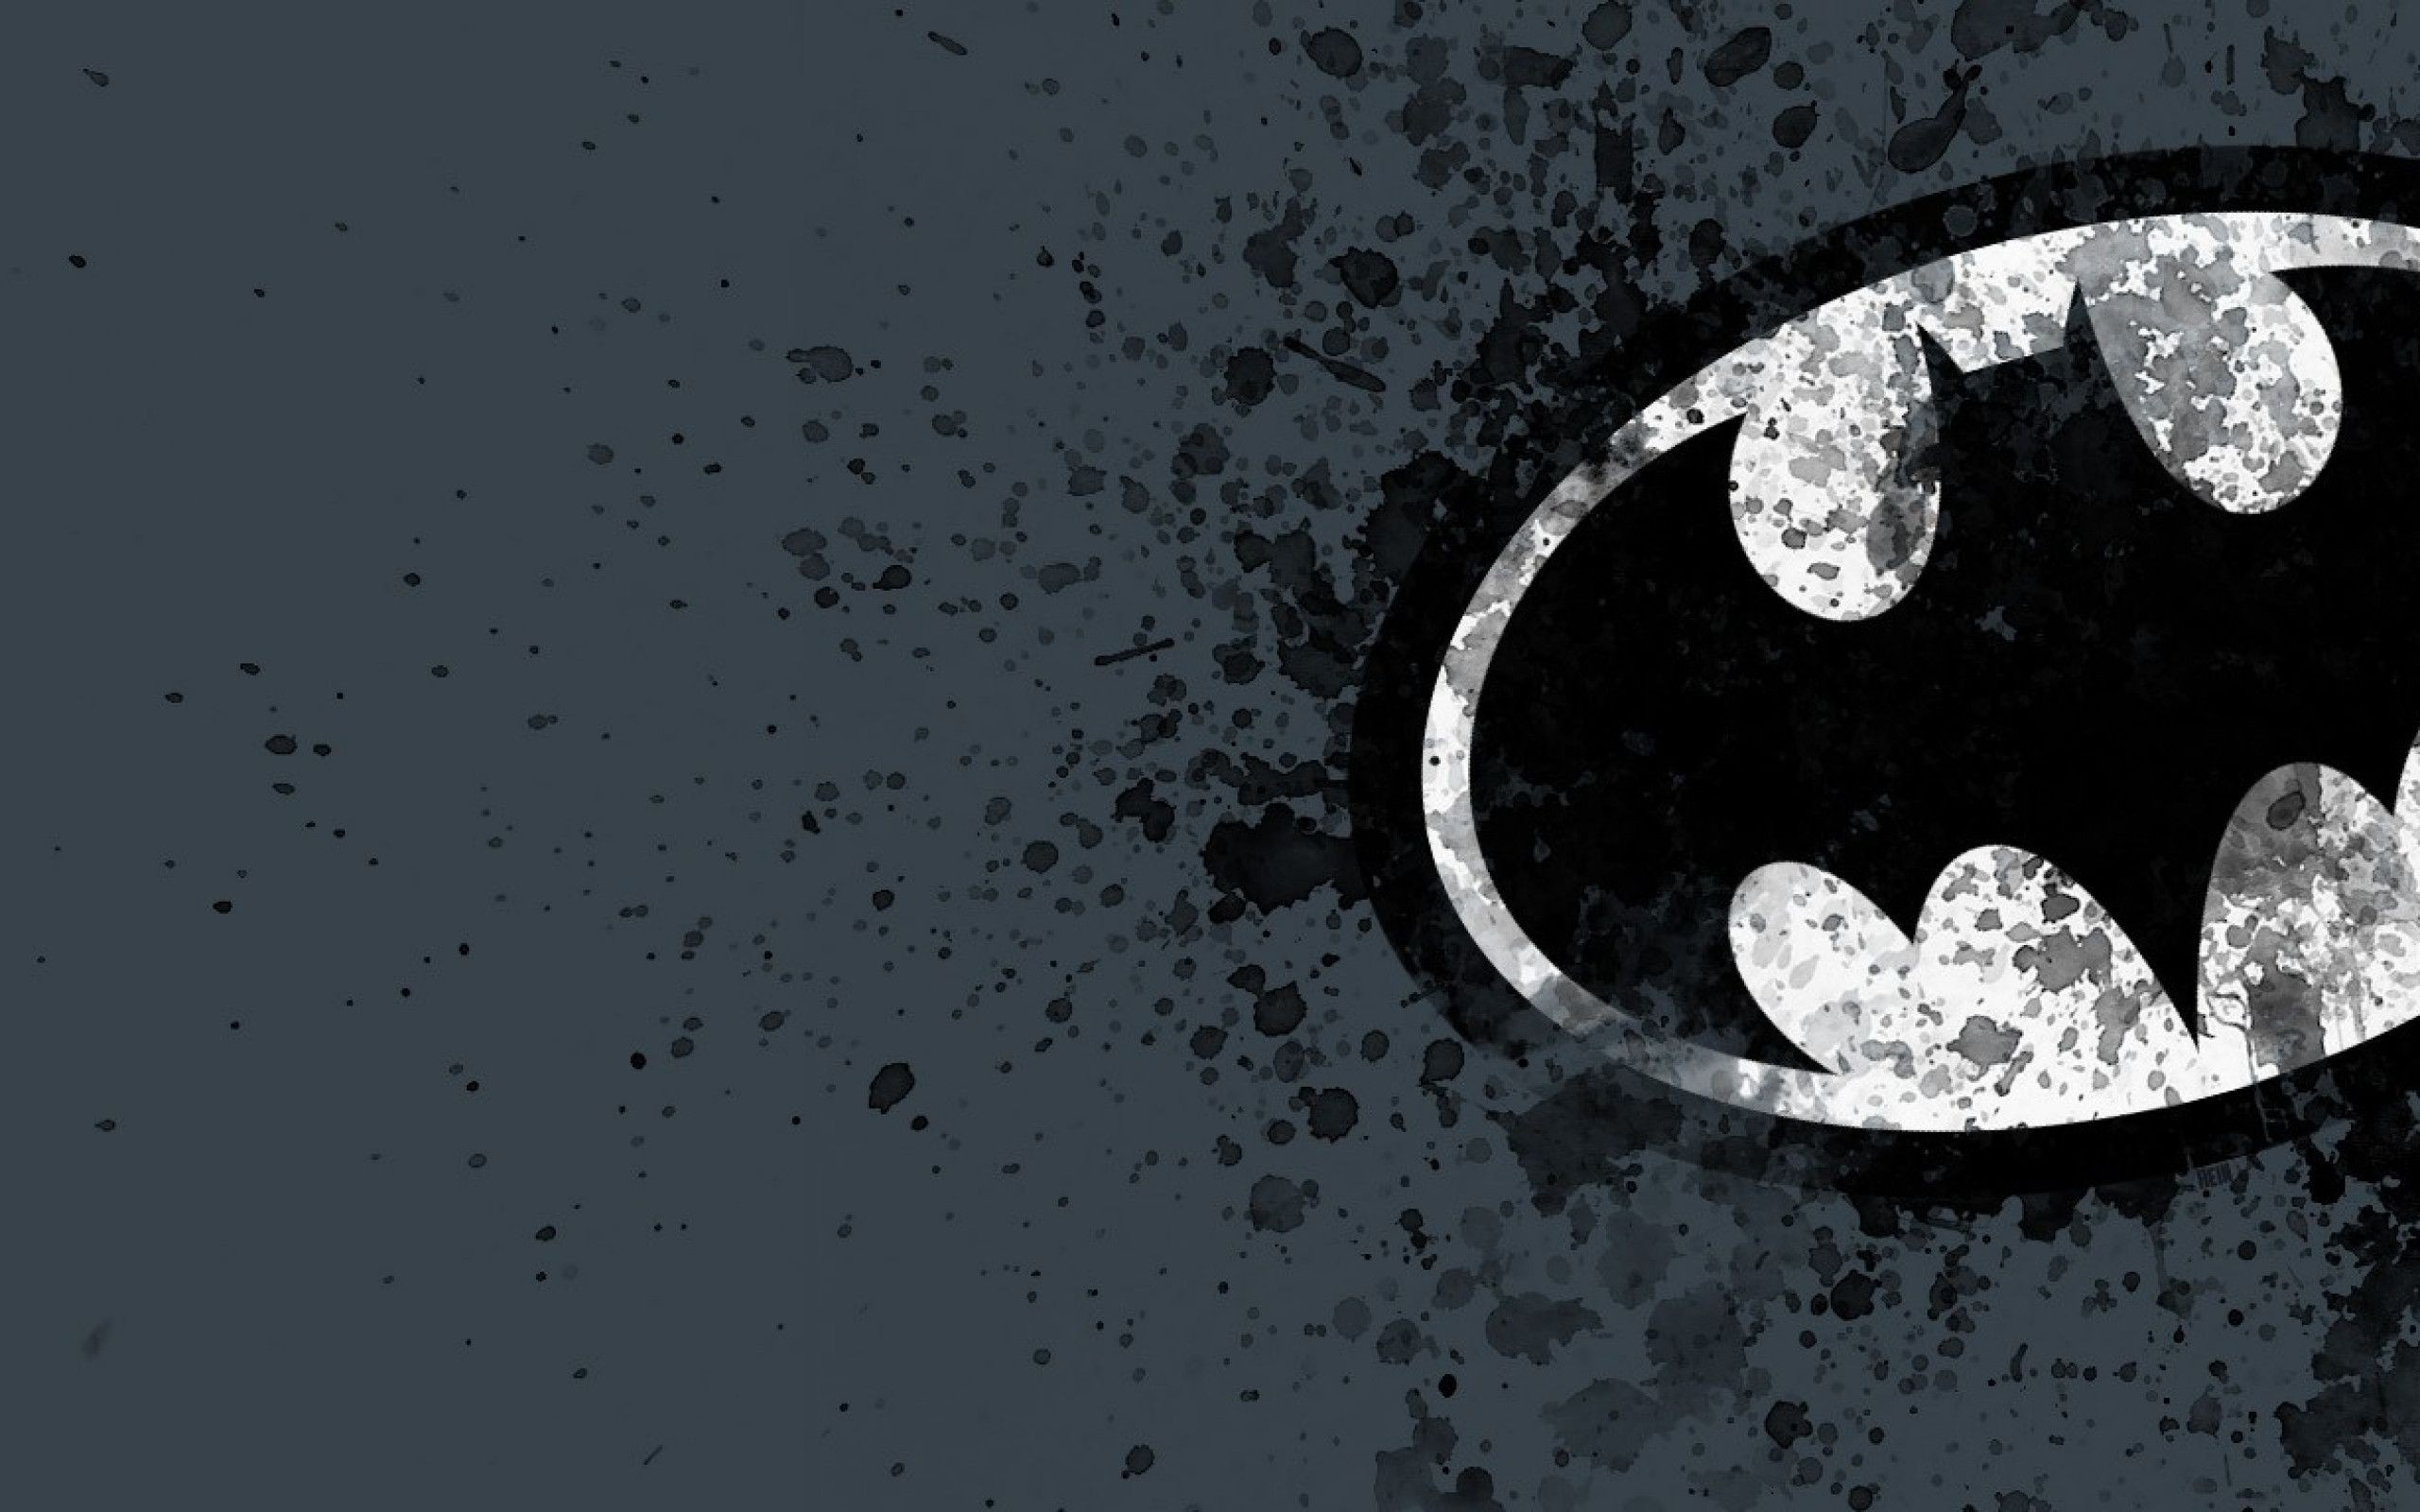 batman wallpaper hd ·① download free high resolution wallpapers for